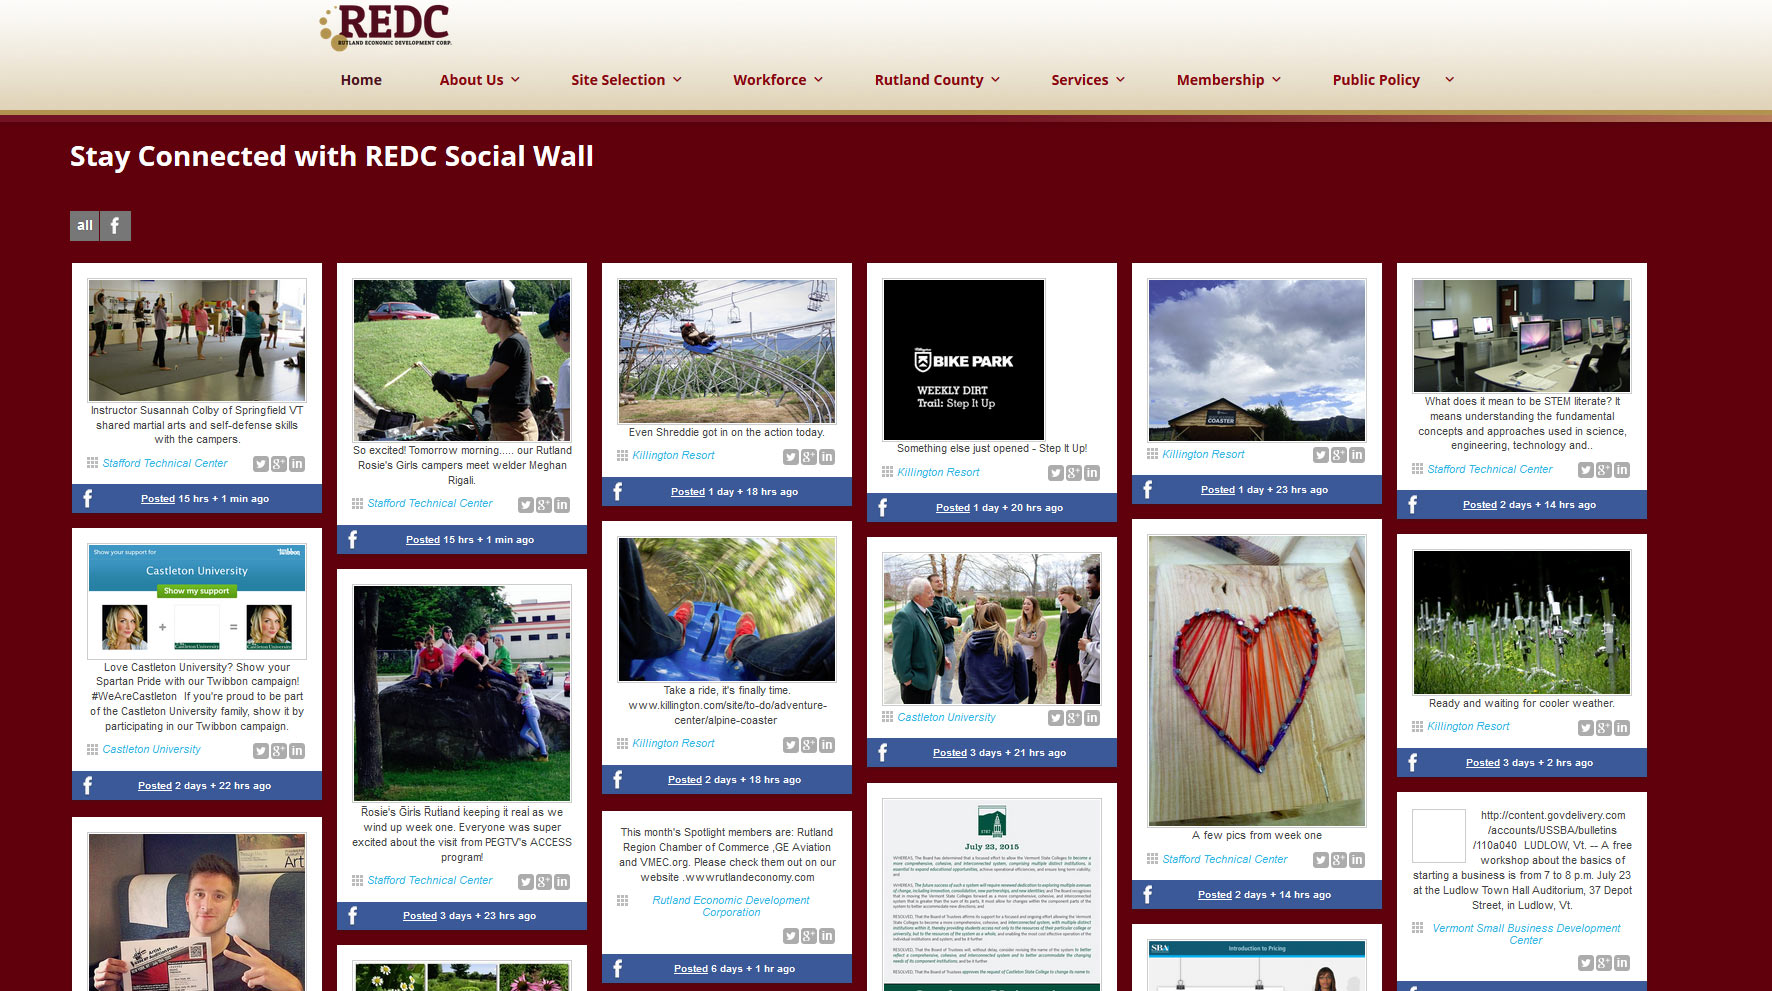 REDC-website-design-social-wall